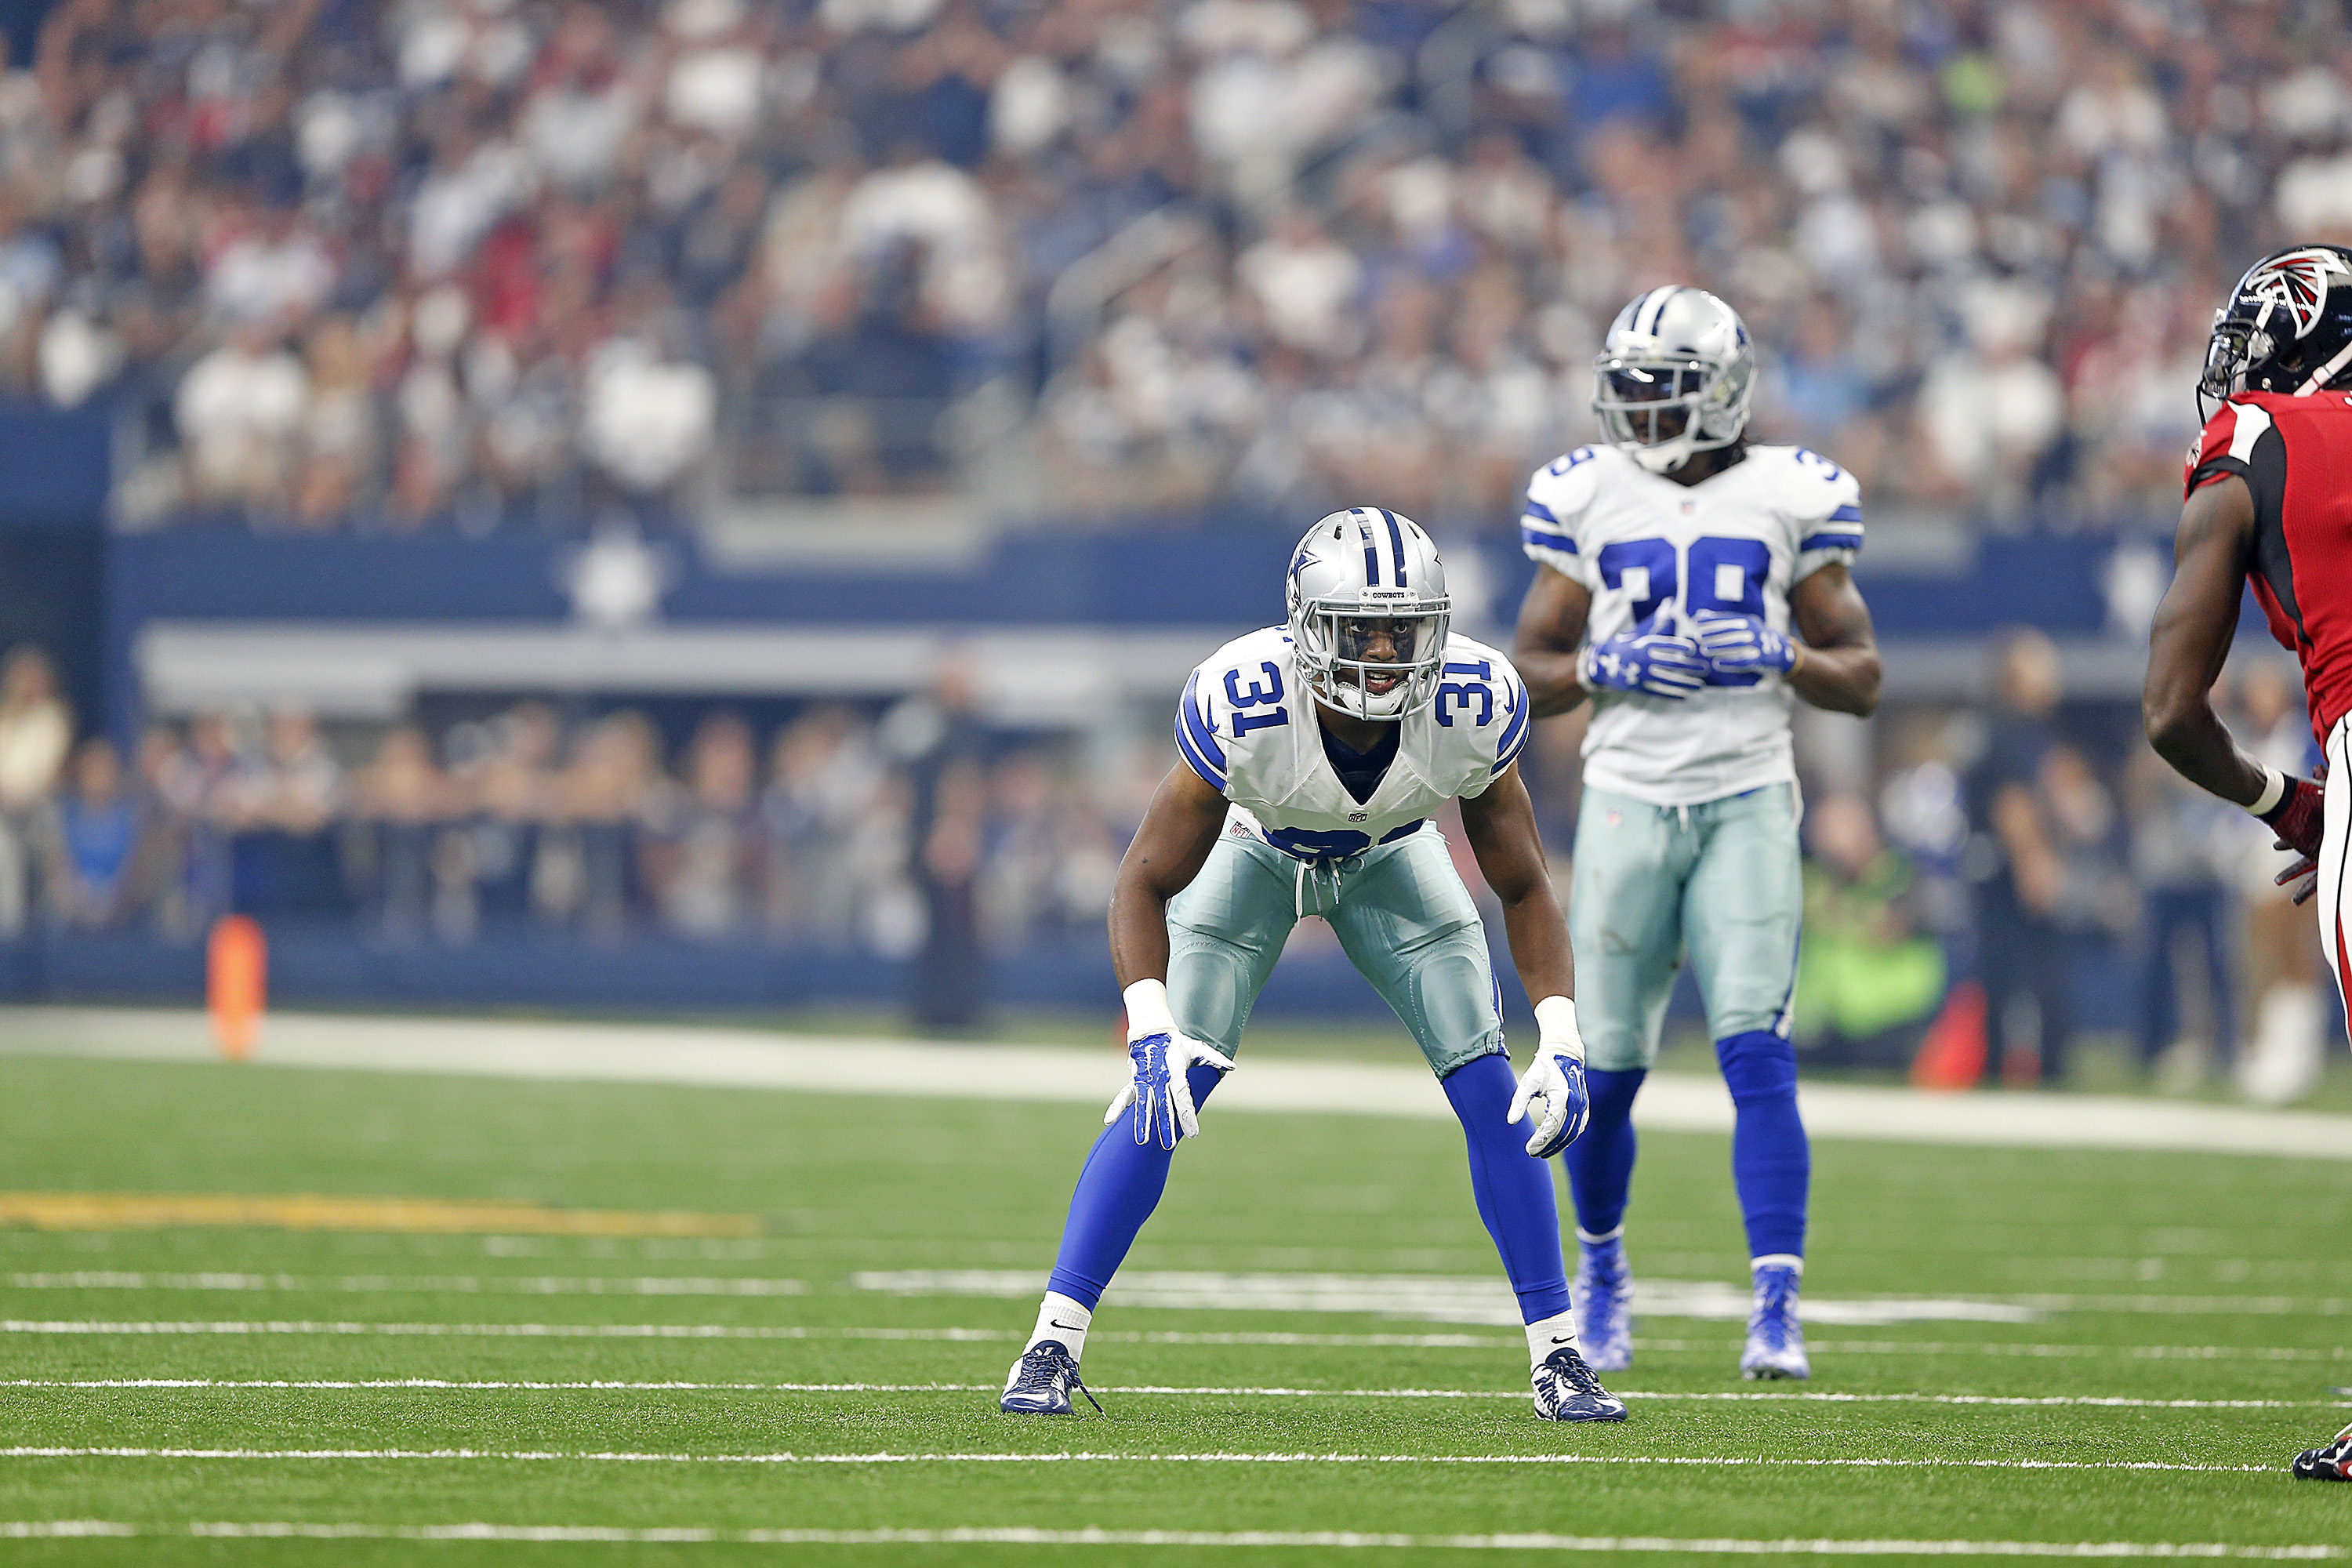 Cowboys Blog - Cowboys Crossroads: Is This a Short-Term or Long-Term Team? 1